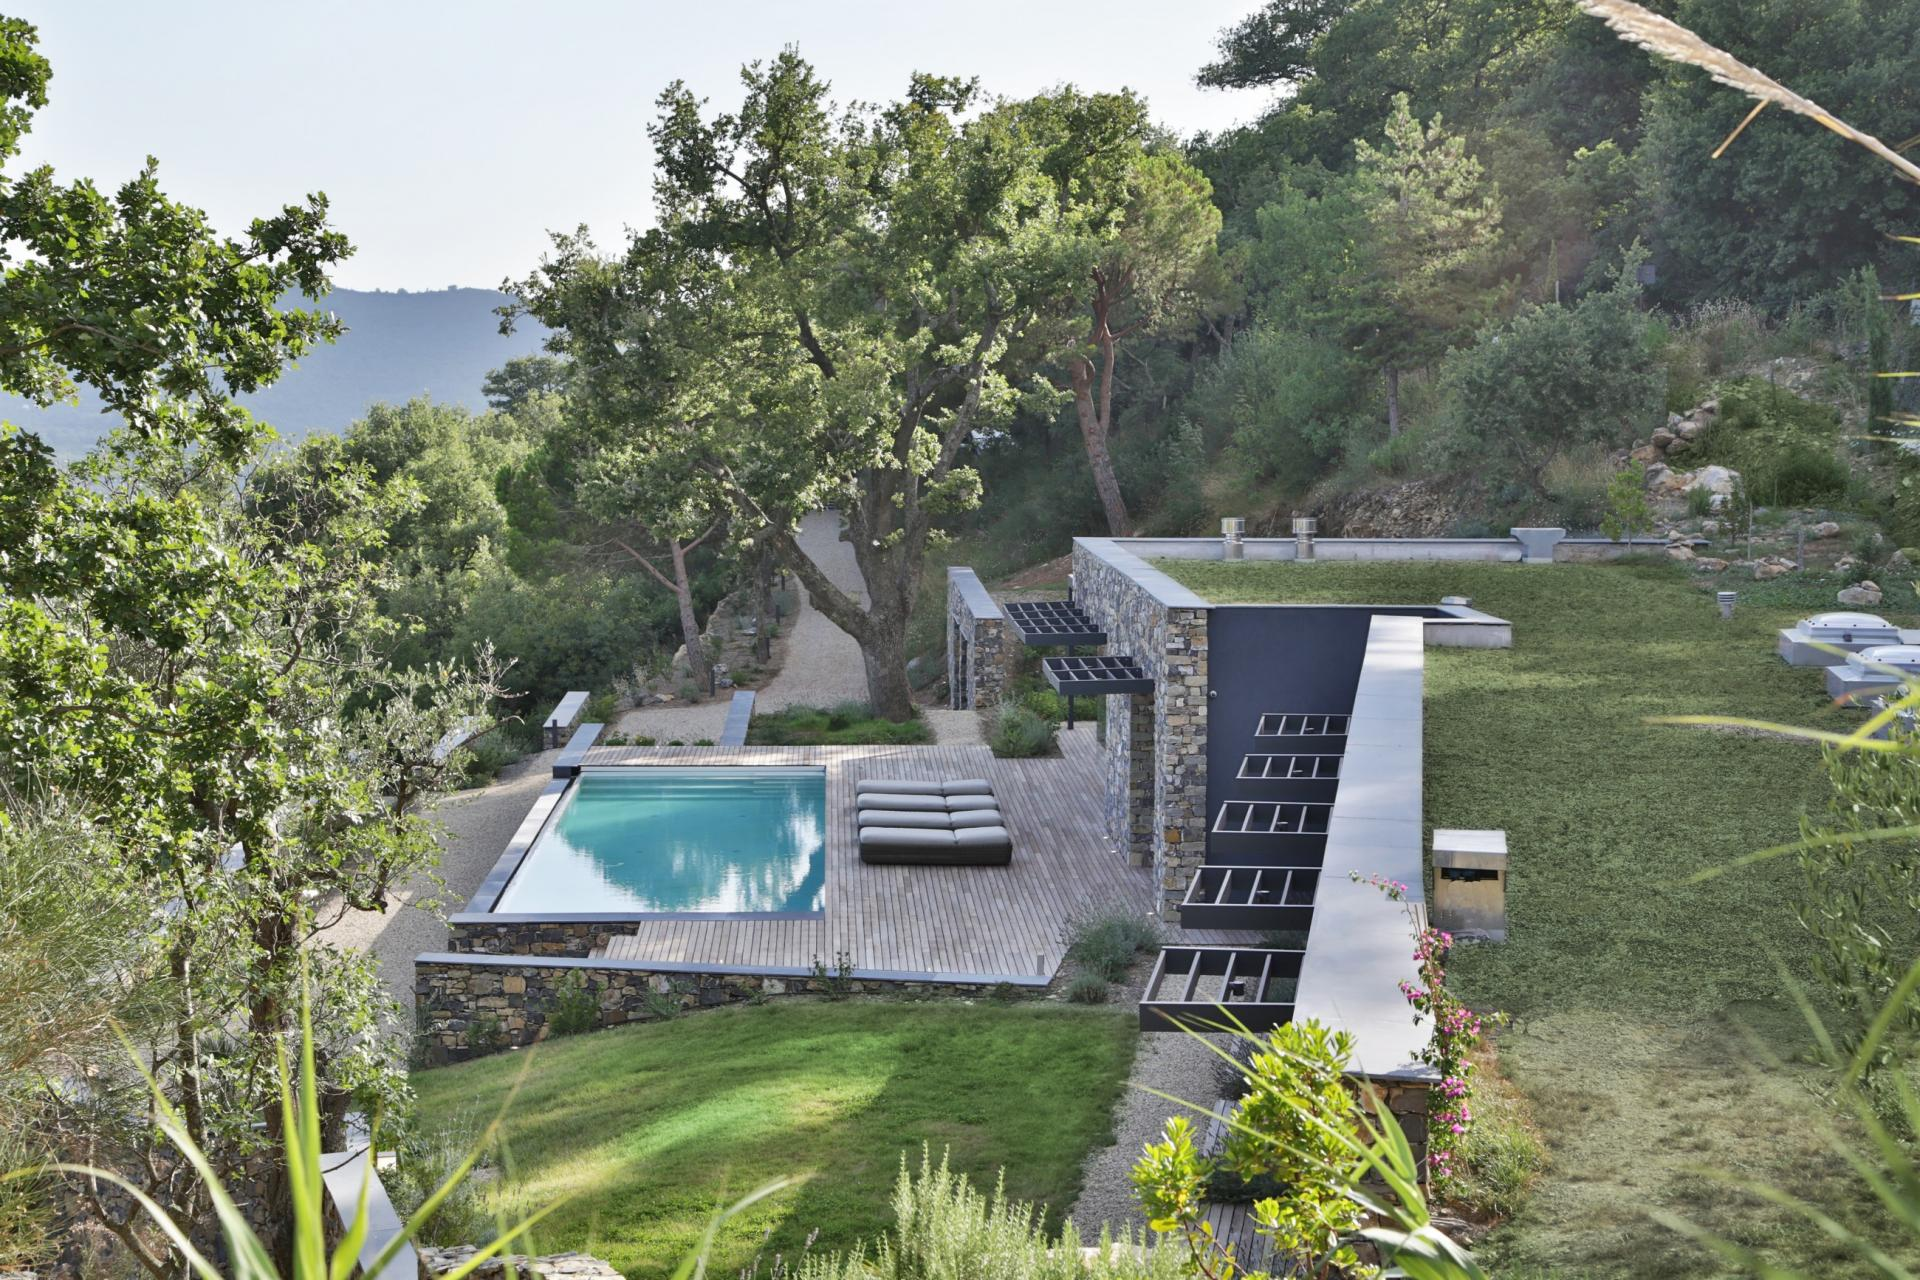 The Villa Nemes: A Natural Stone Residence